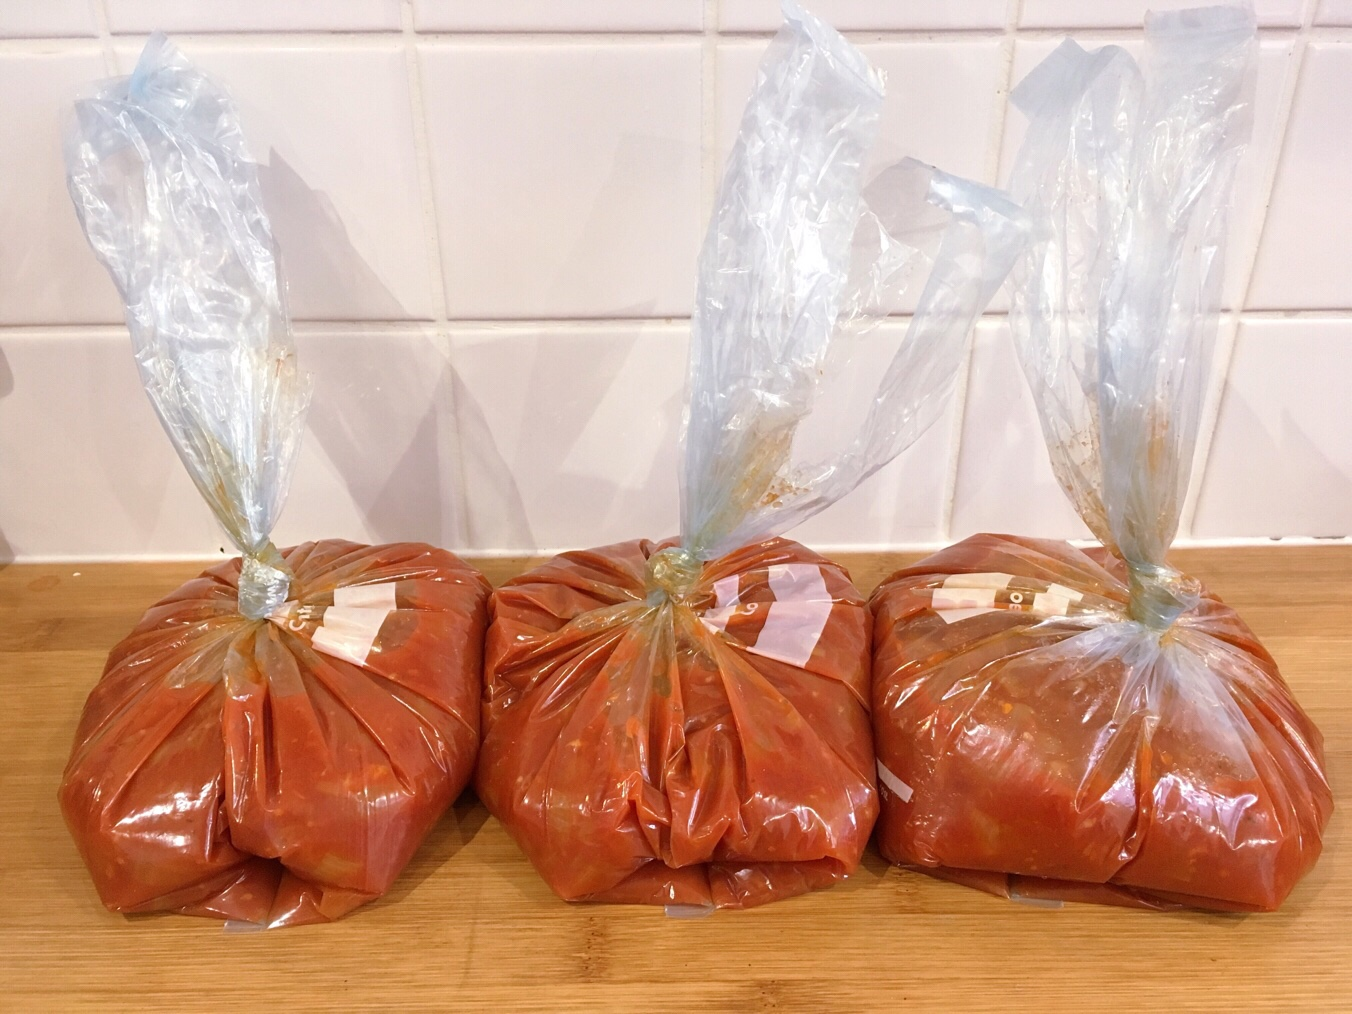 bags of tomato sauce ready for freezing